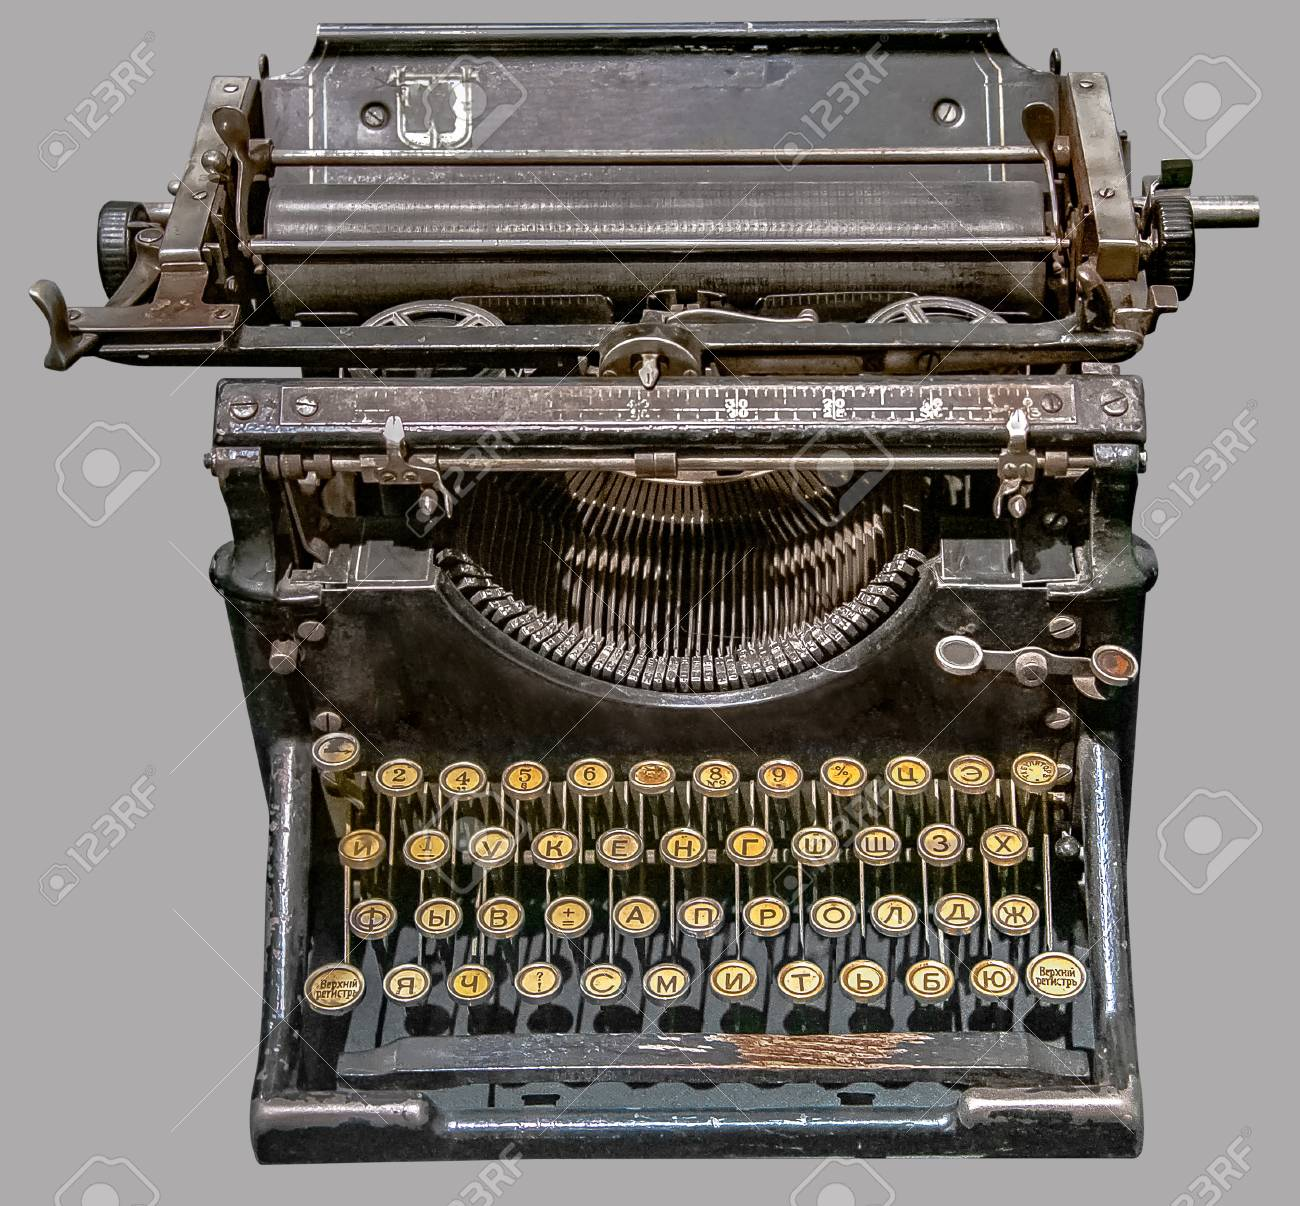 d34d97aa555 ANTIQUE RUSSIAN TYPEWRITER. Old vintage Russian typewriter on isolated gray  background with clipping path.